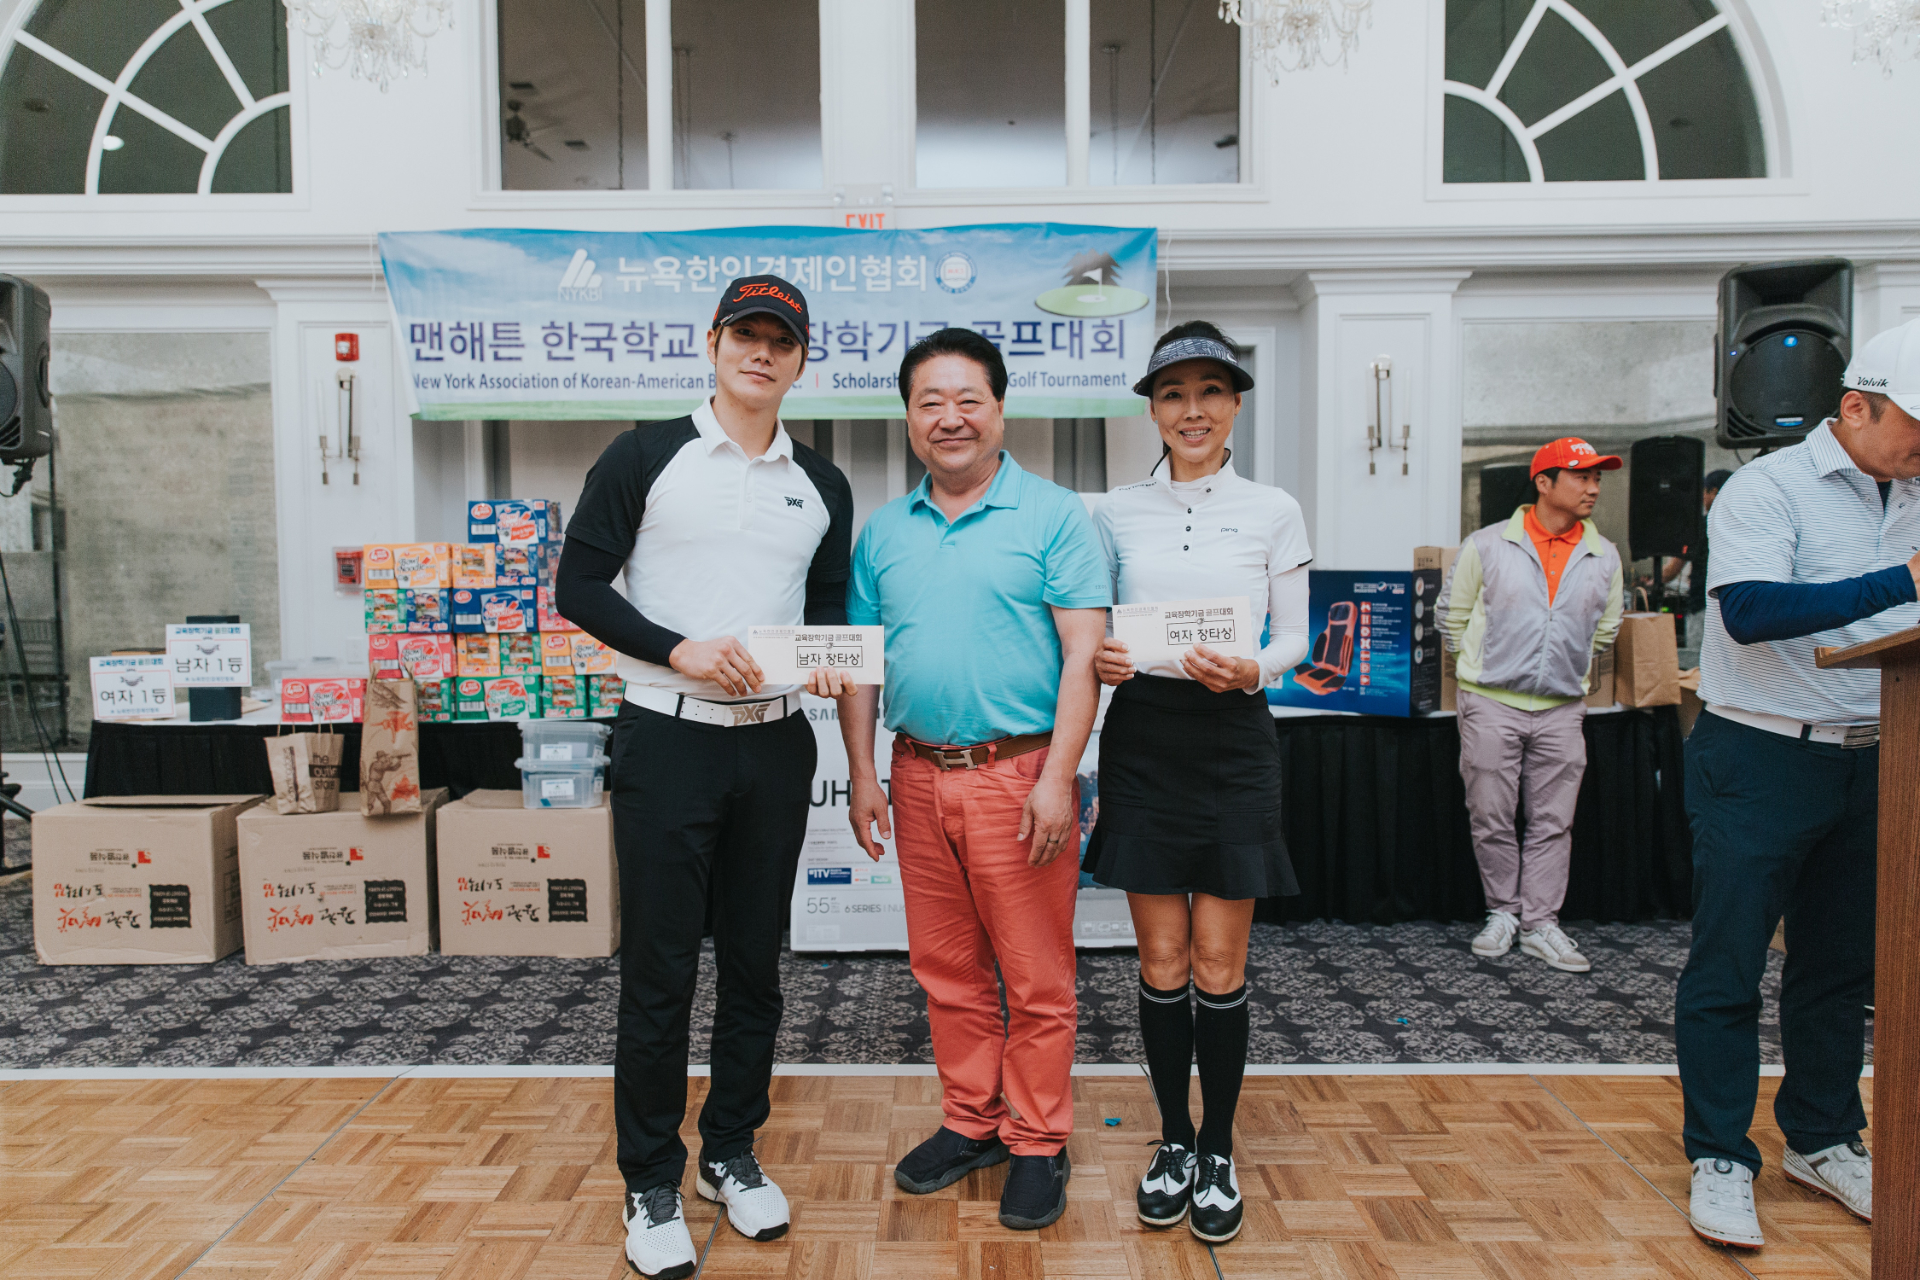 https://nykbi.com/new/wp-content/uploads/2019/07/190619-Scholarship-Fundraising-Golf-Tournament-055.jpg